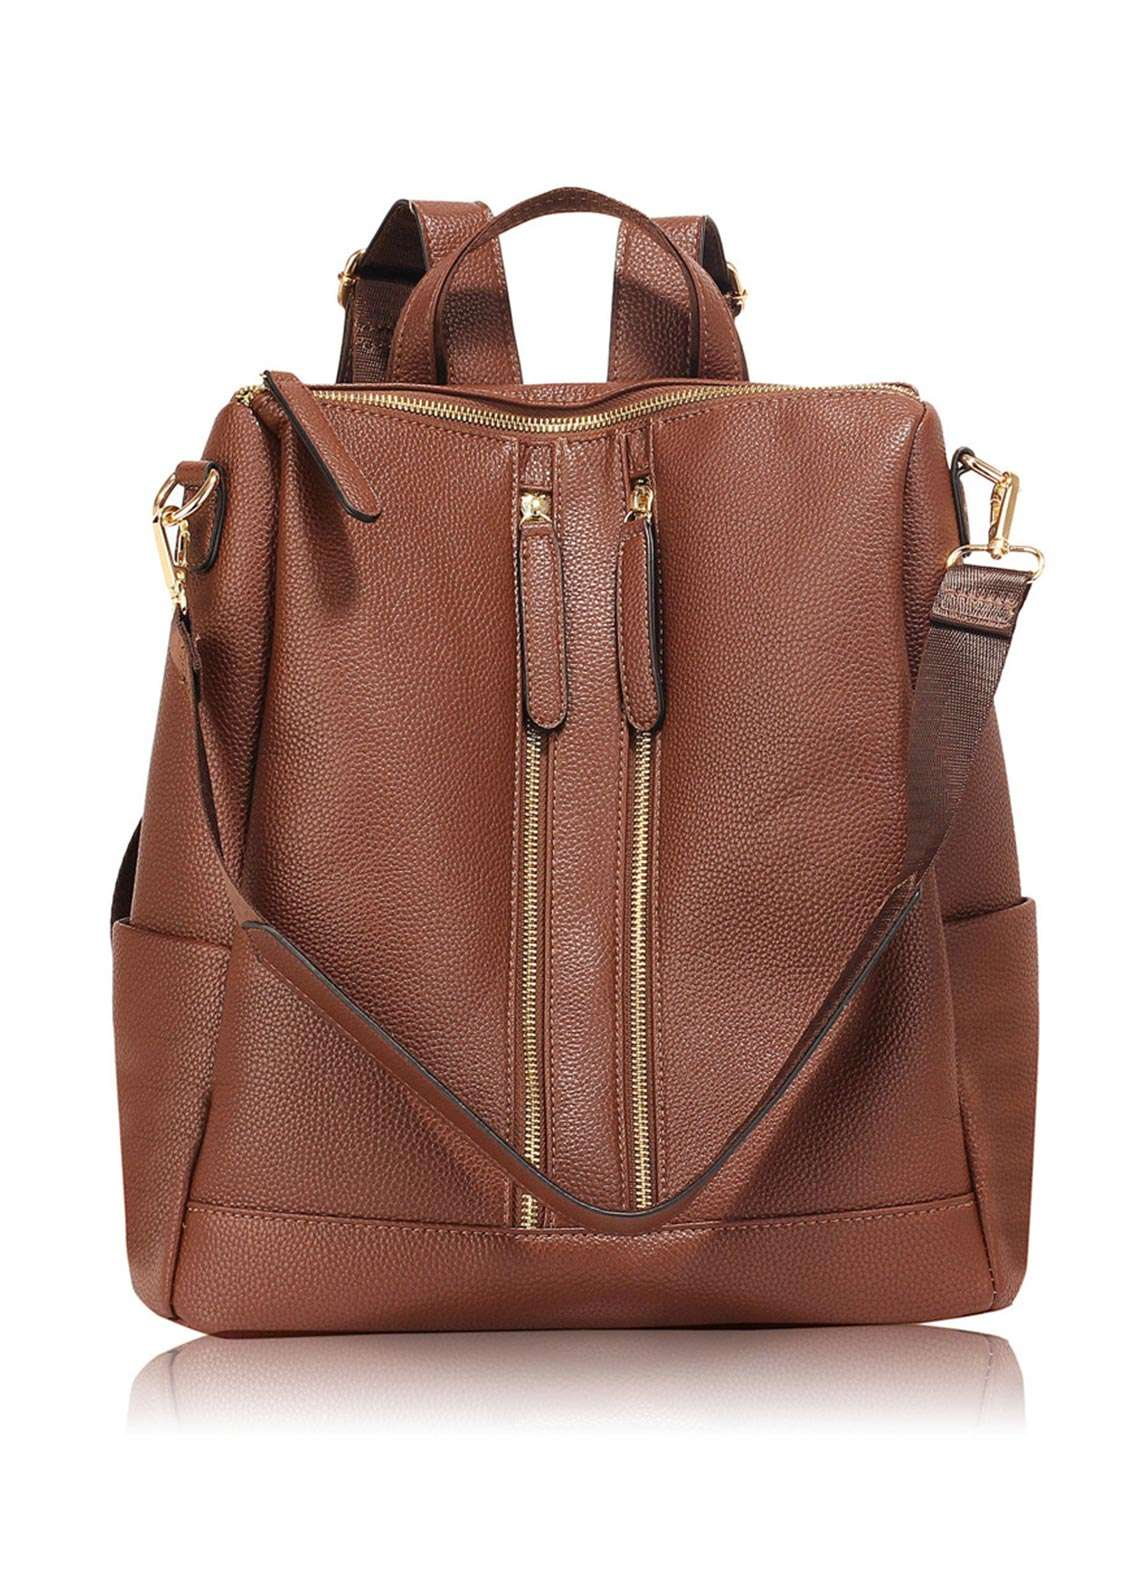 Anna Grace London Smooth Backpack Bags  for Women  Coffee with Grainy Texture